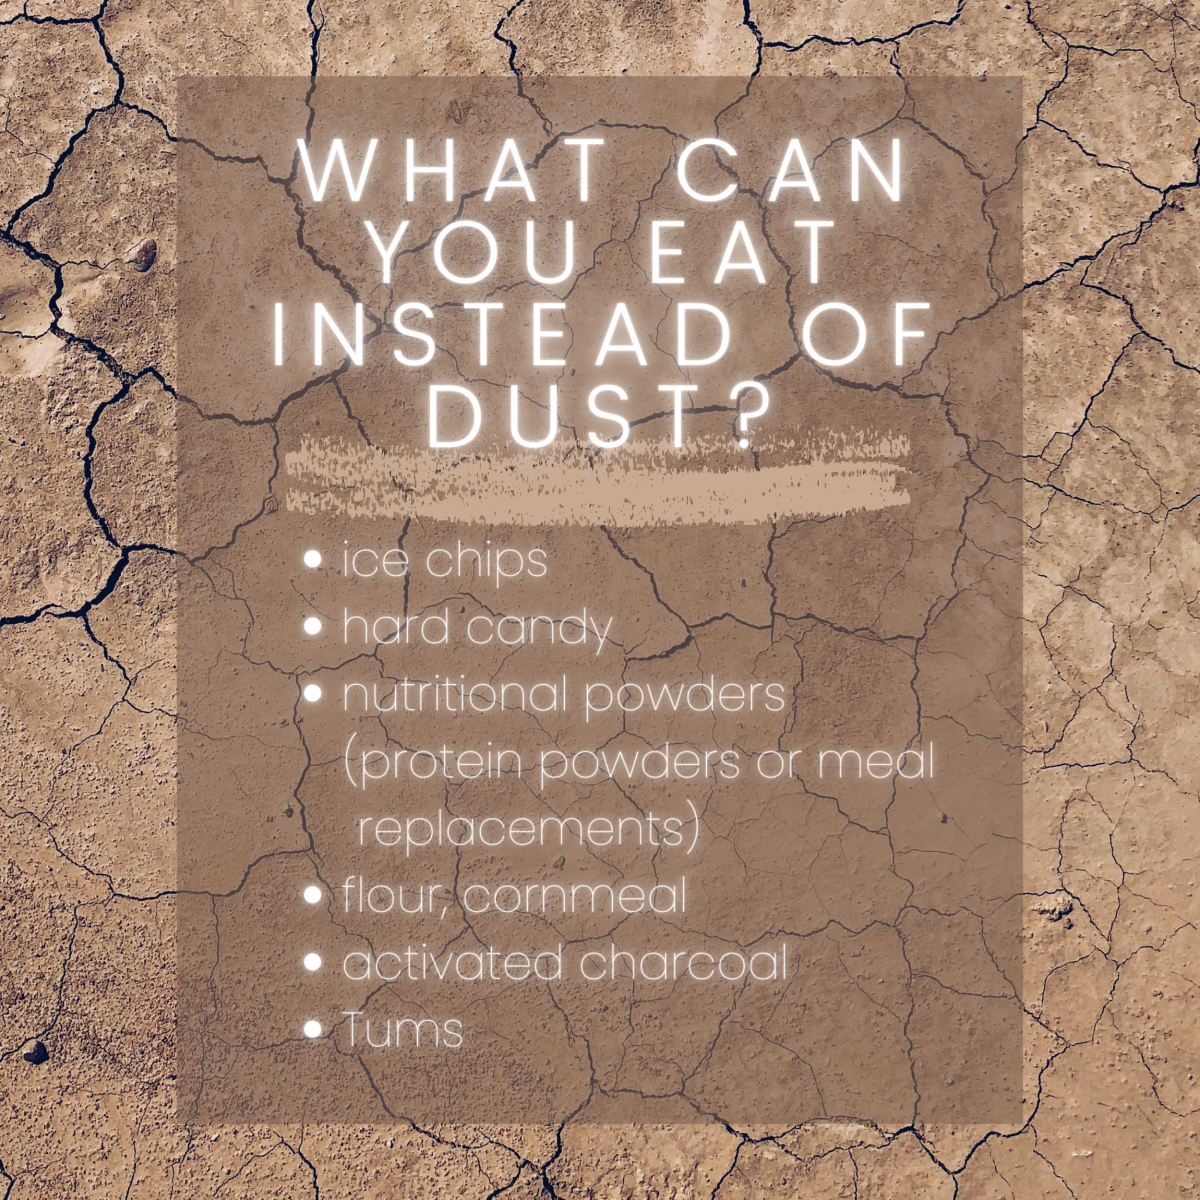 A list of safe things to eat instead to satisfy your dirt cravings.